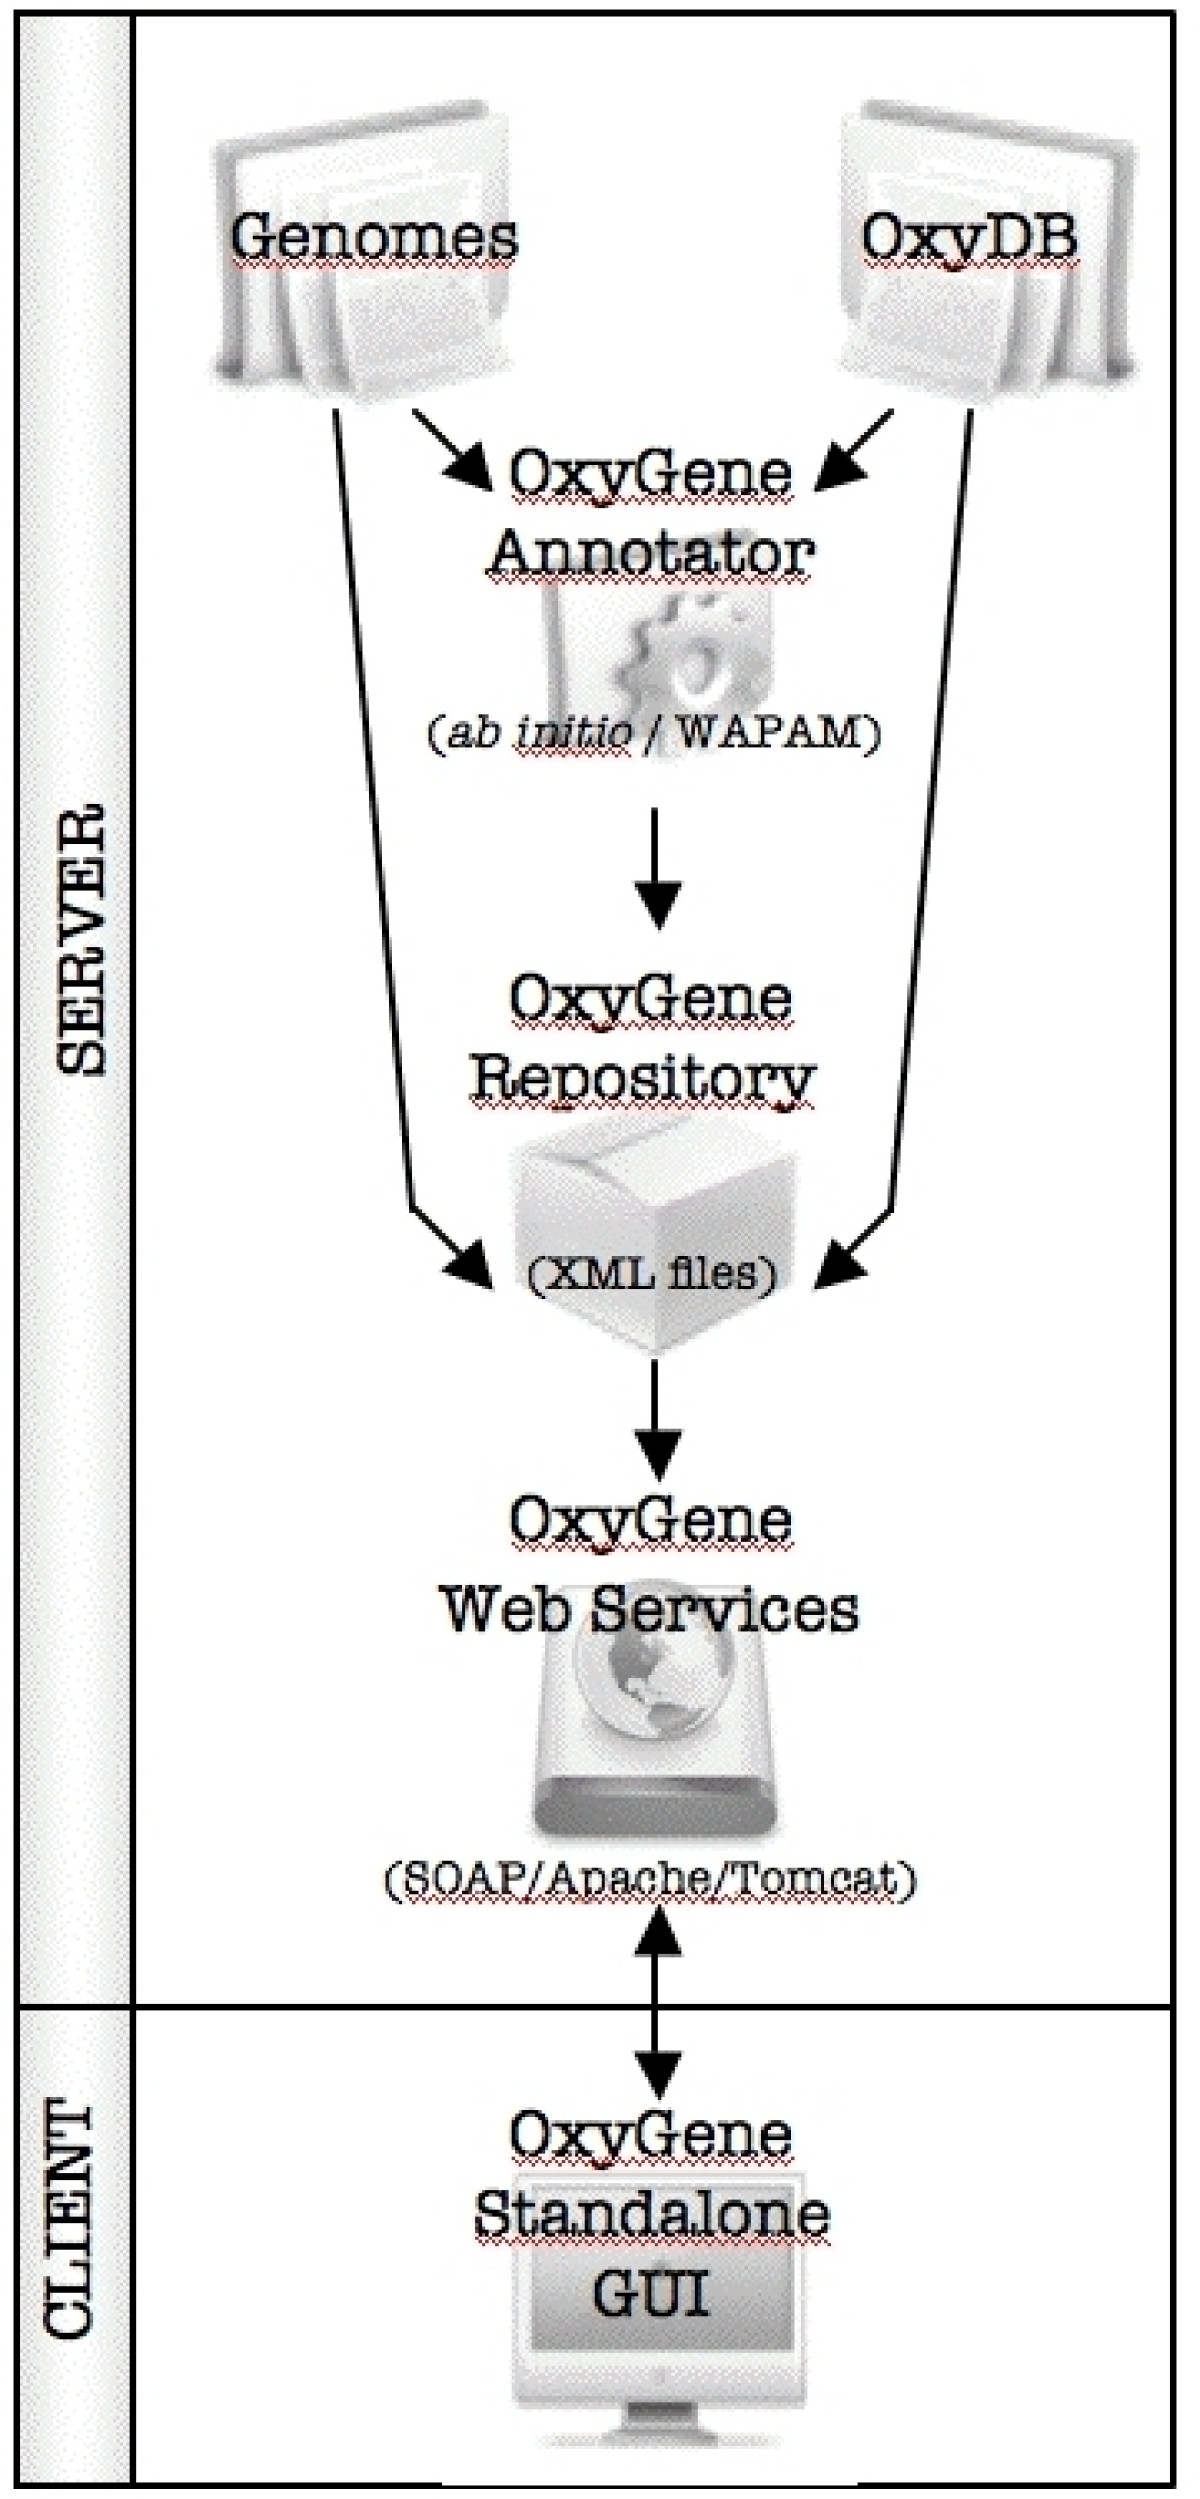 http://static-content.springer.com/image/art%3A10.1186%2F1471-2164-9-637/MediaObjects/12864_2008_Article_1830_Fig1_HTML.jpg